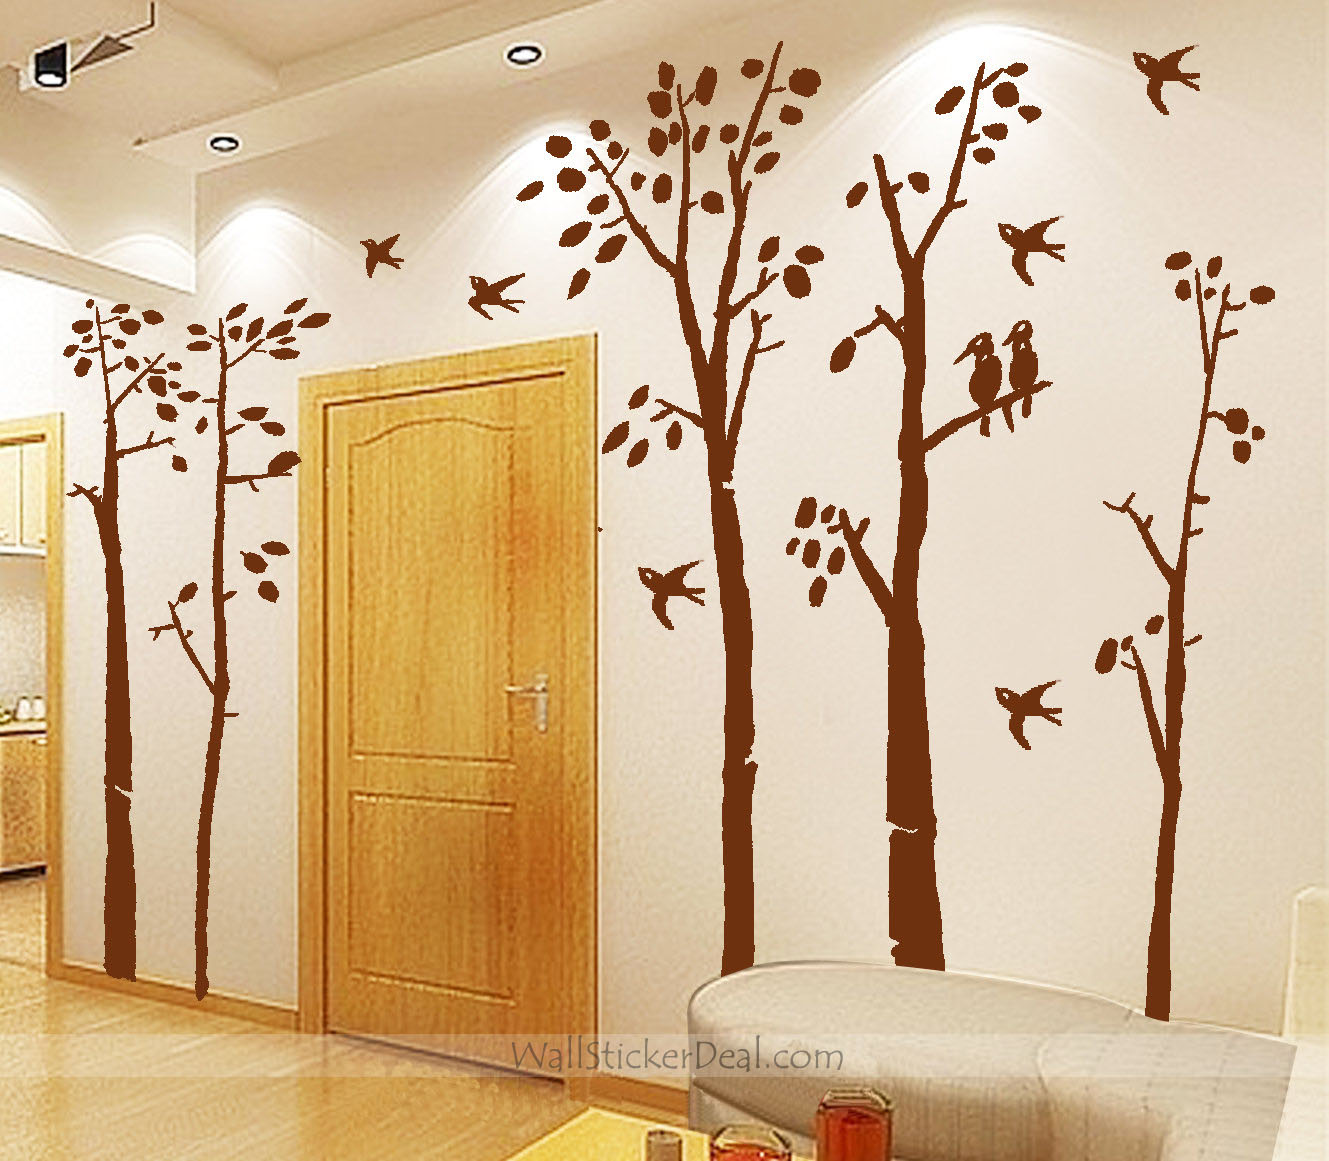 Birds in the Birch Forest Wall Sticker